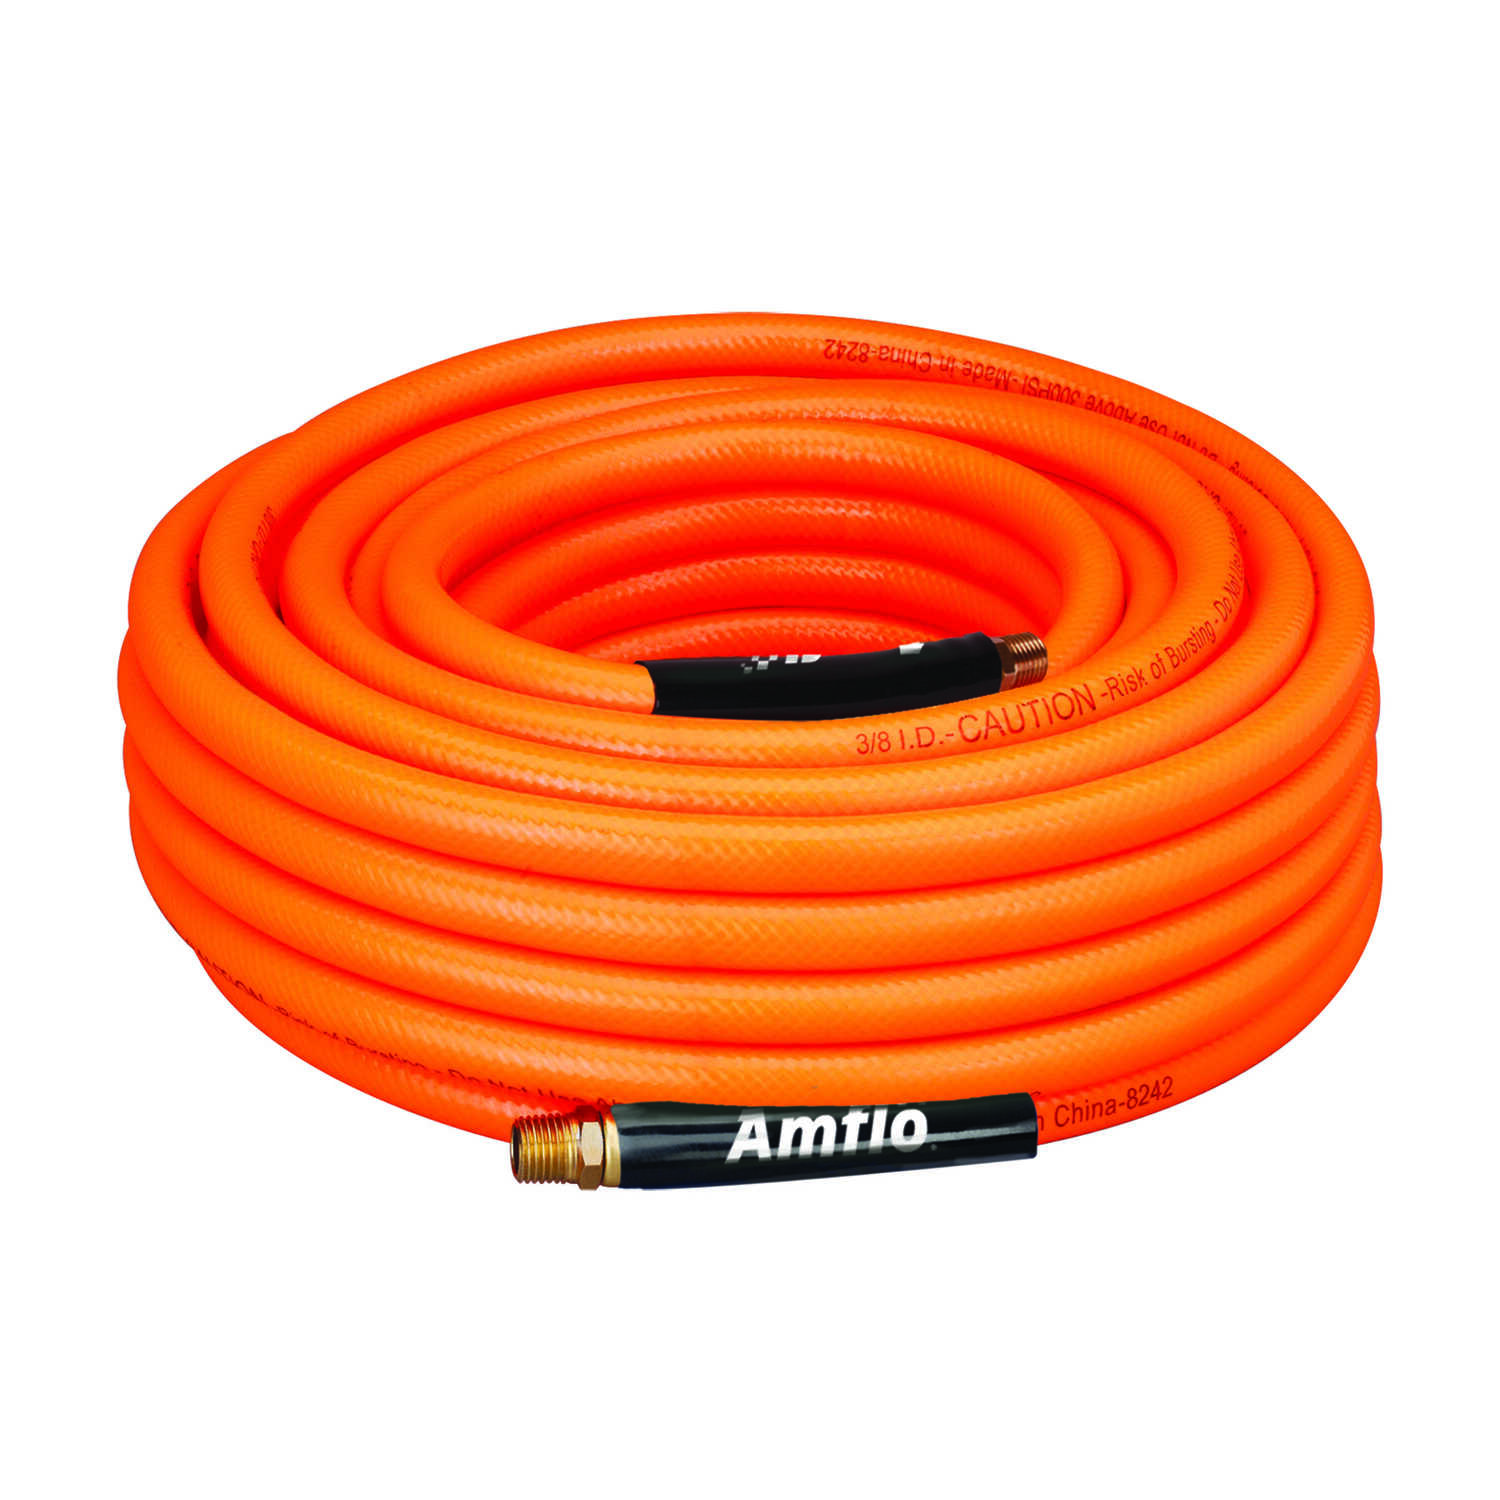 Amflo  50 ft. L x 3/8 in. Dia. Polyvinyl  Air Hose  300 psi Orange